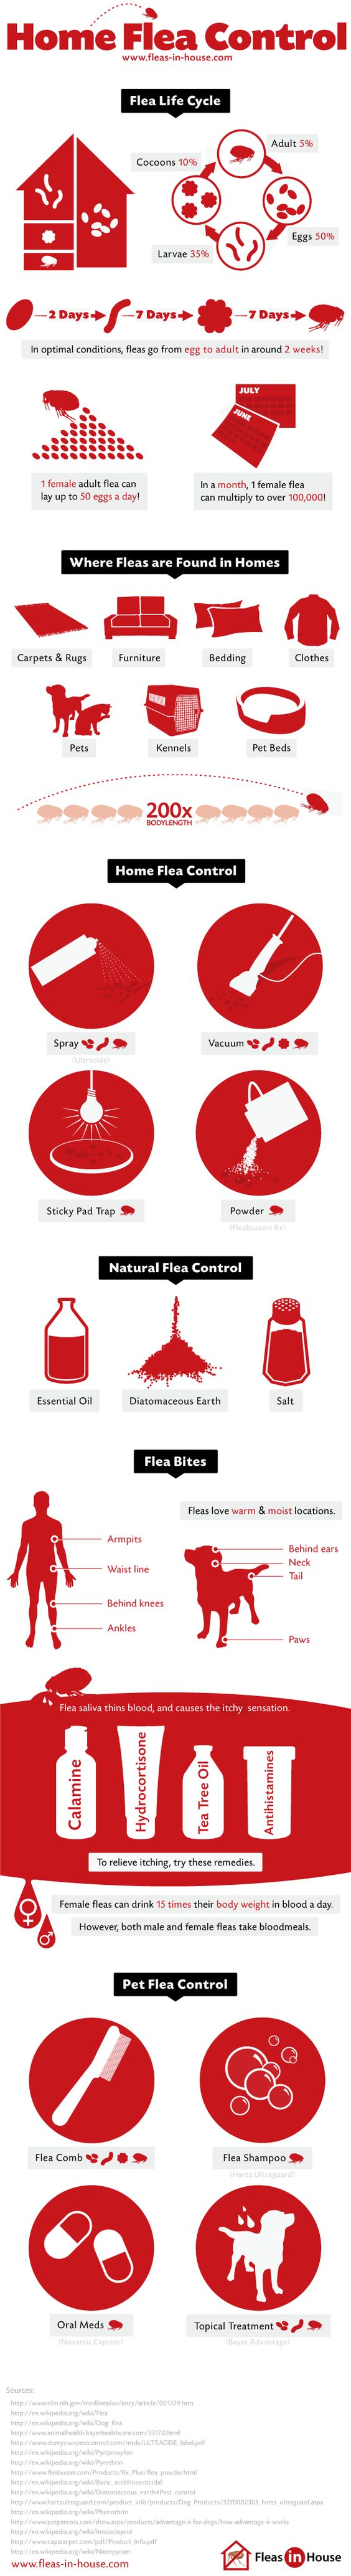 Thisgraphic Showsrmation About Fleas In Homes This Includes Their Life  Cycle, How Fast They Reproduce